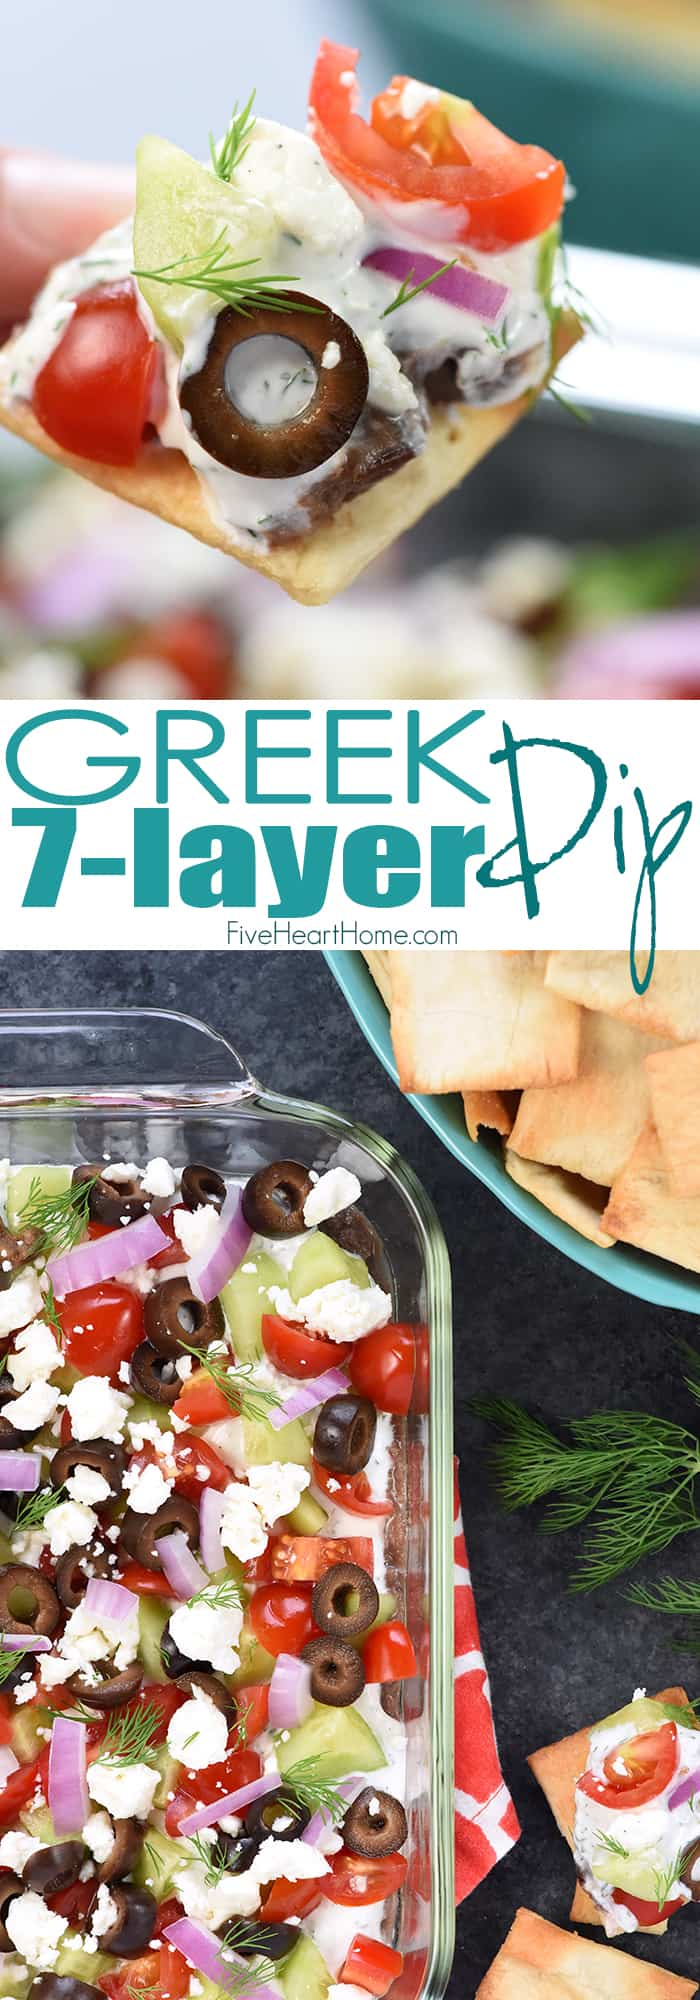 Greek 7-Layer Dip Collage with Text Overlay